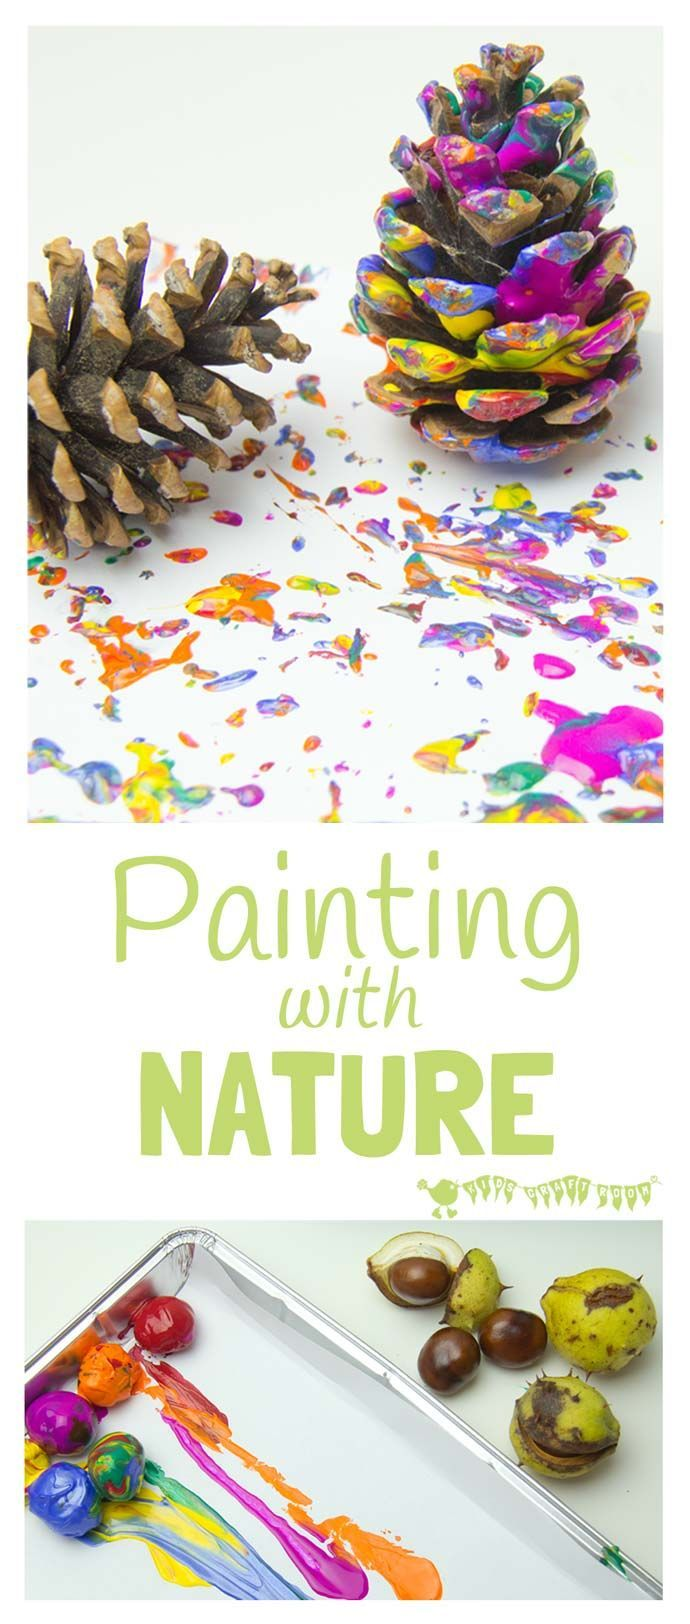 Painting with Nature is an exciting and simple process art technique for kids that explores textures and patterns in a fun and open-ended way.